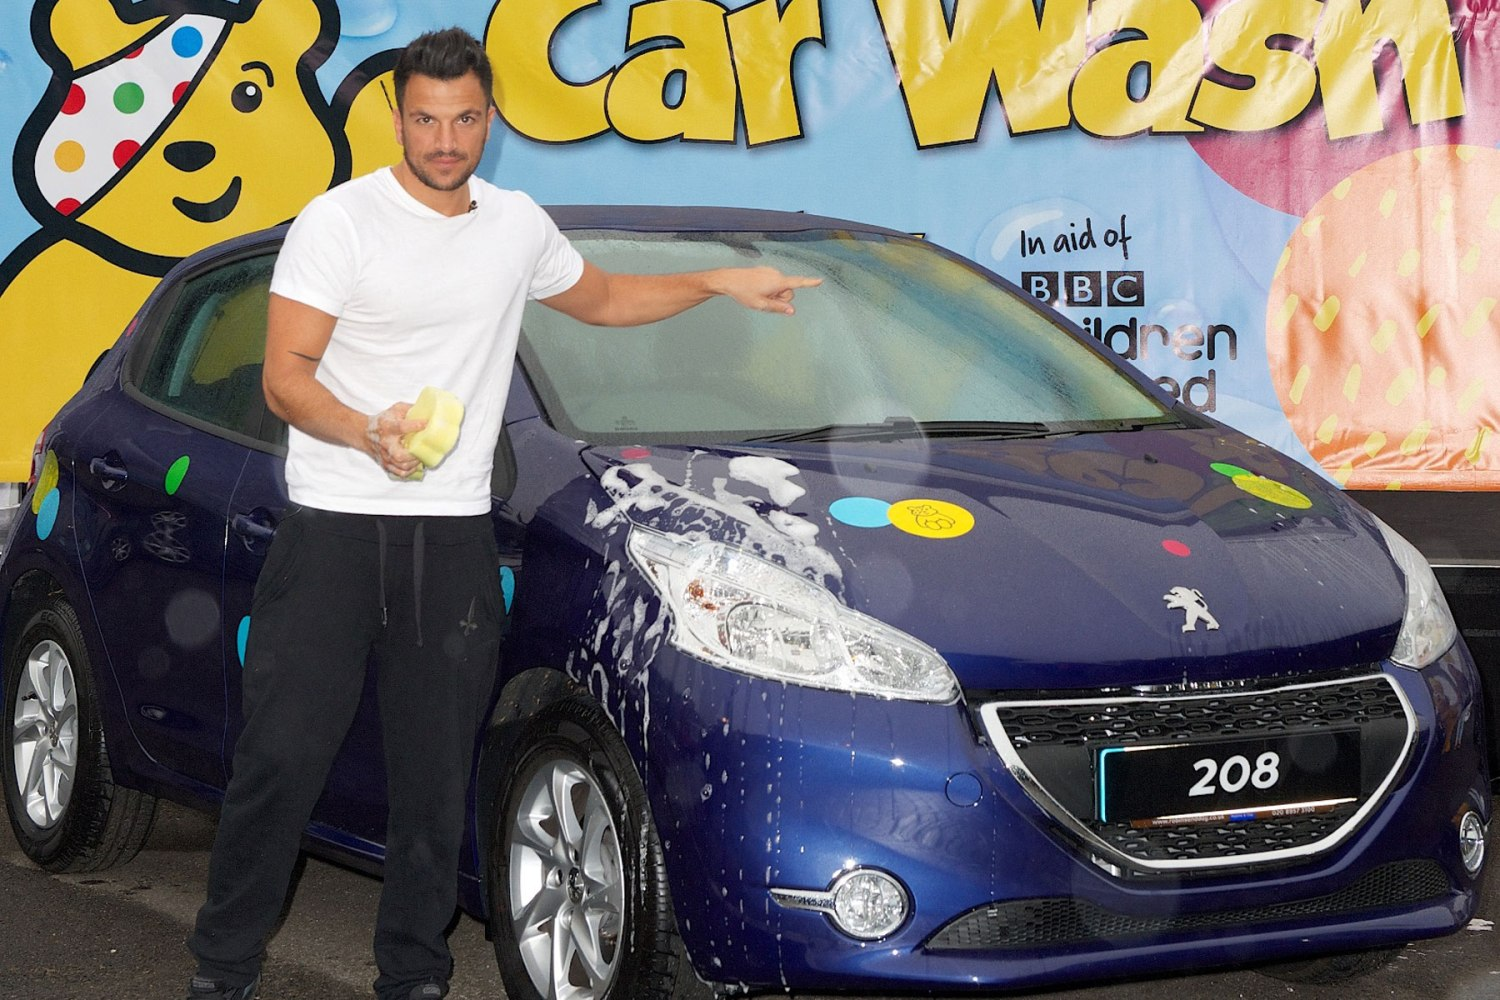 Peter Andre at the car wash